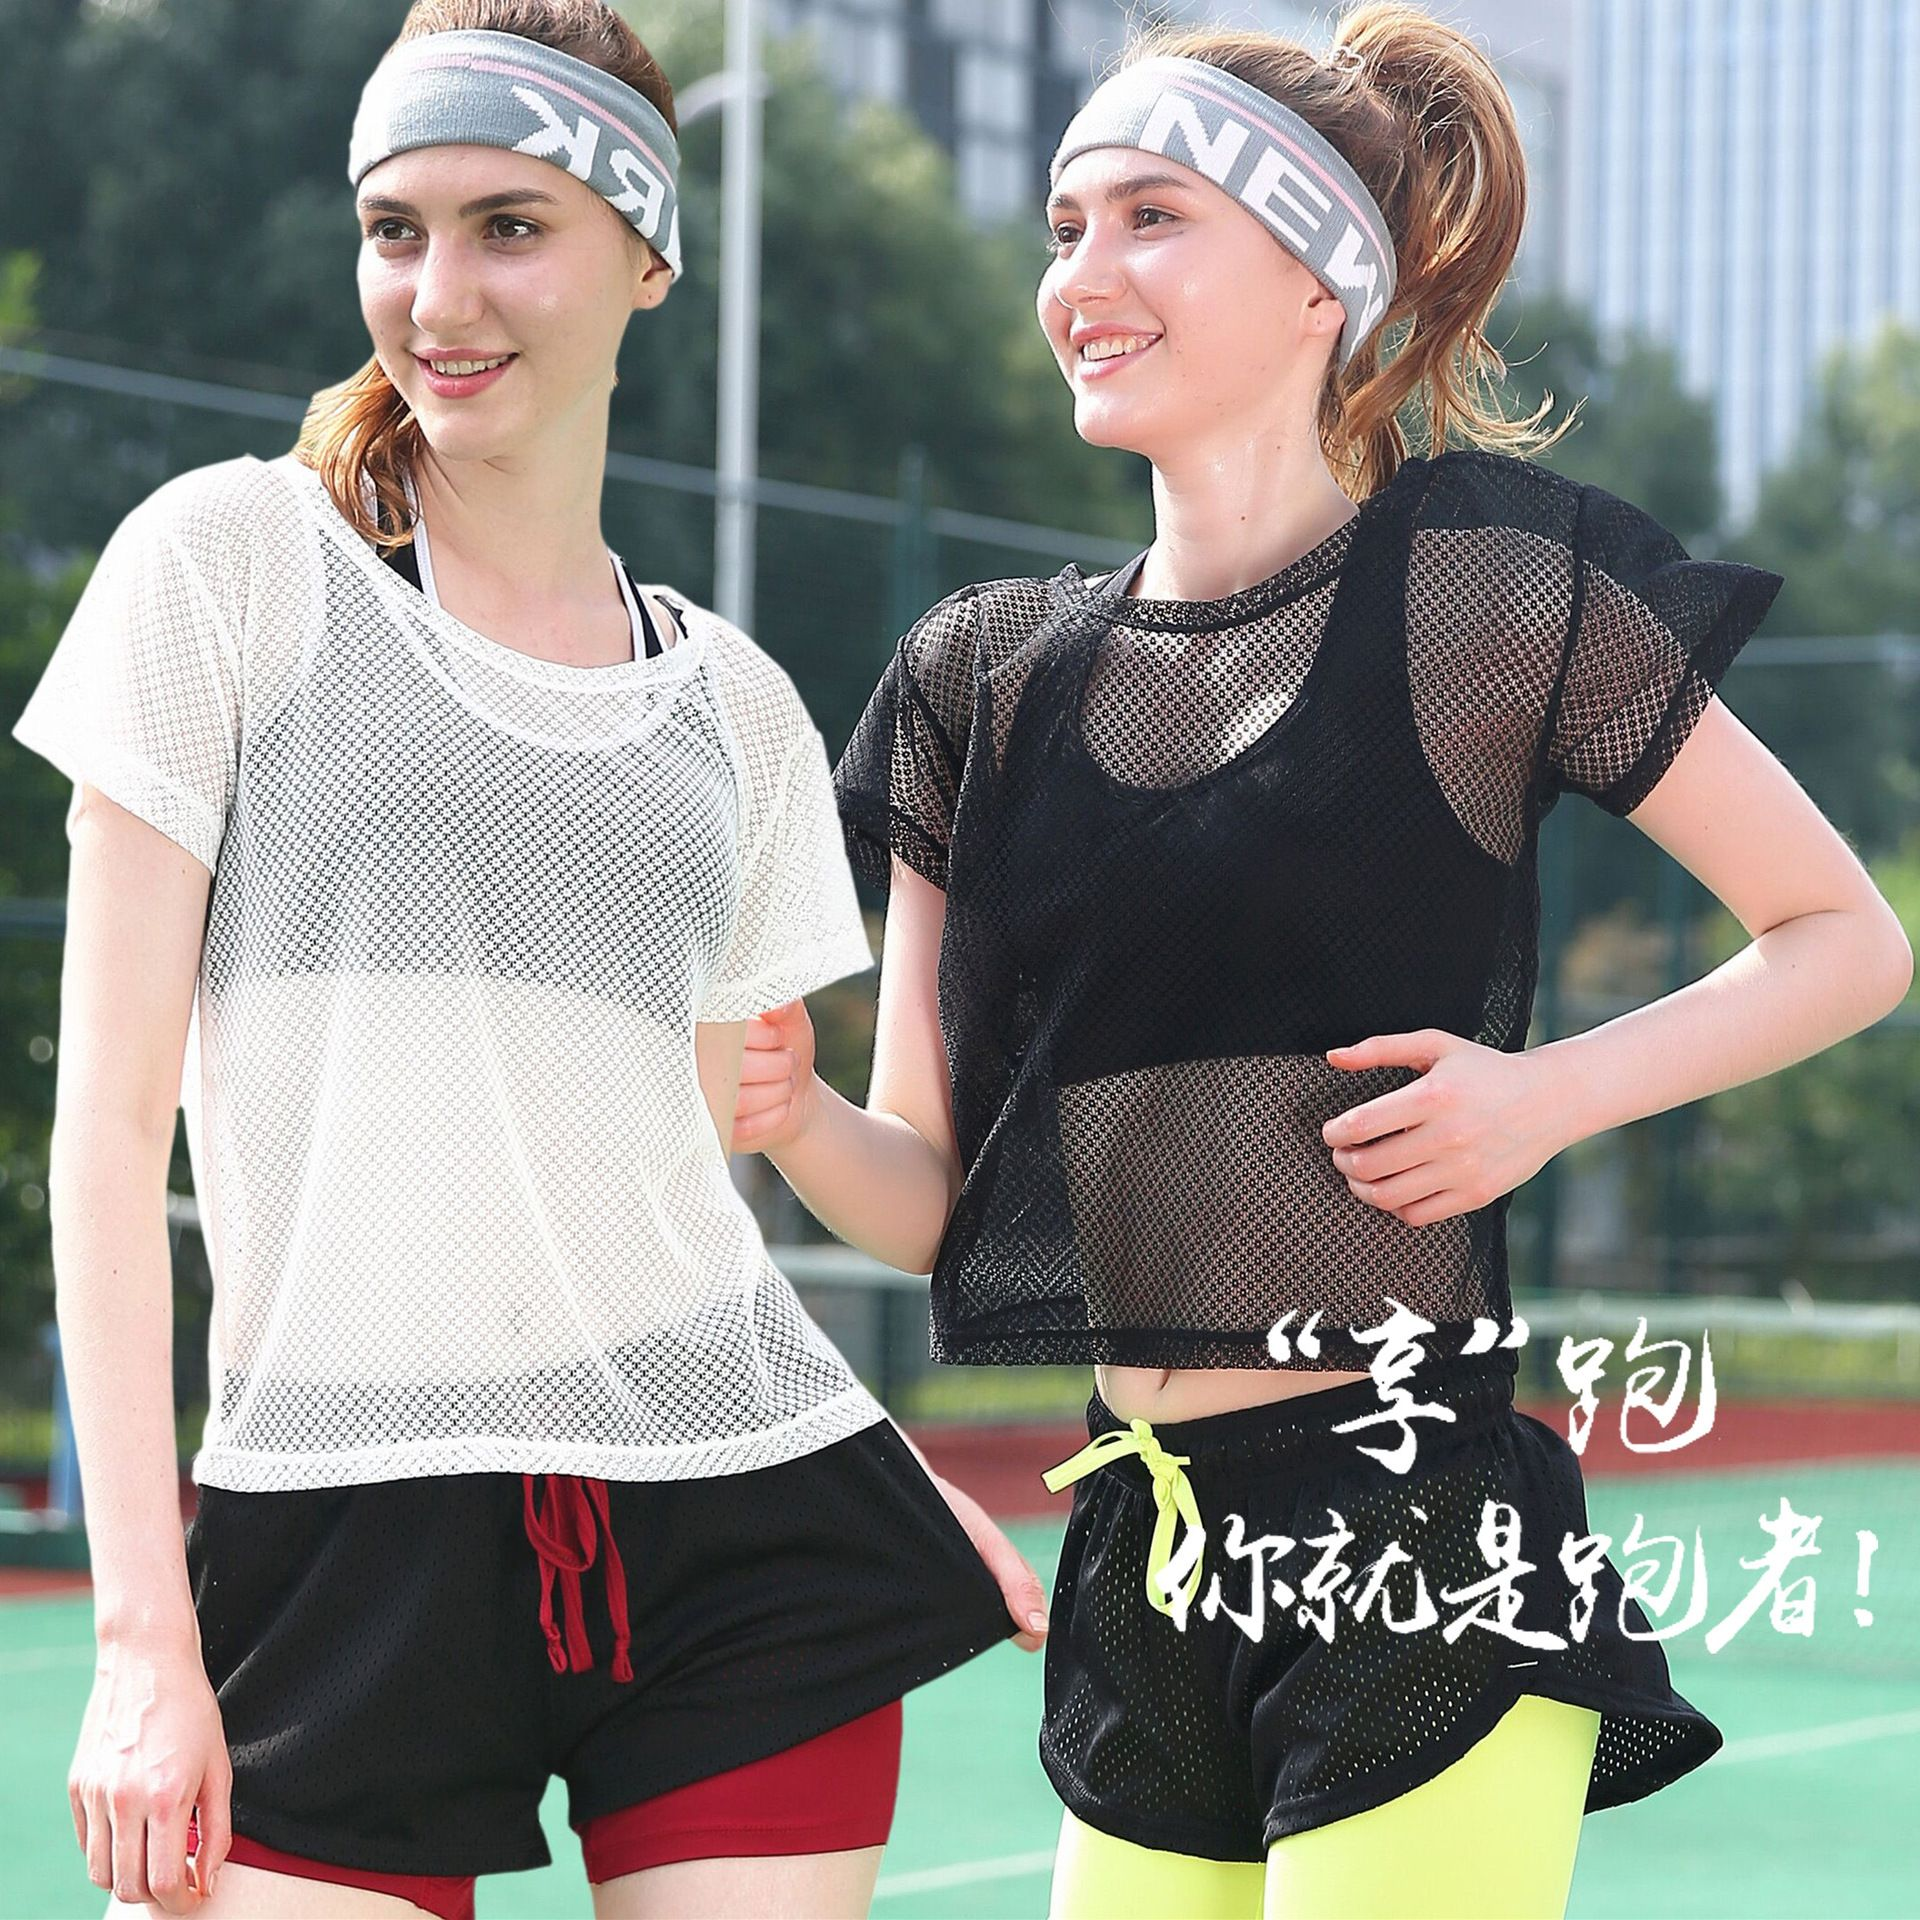 The new sports fitness network Shazhao spring loose shirt